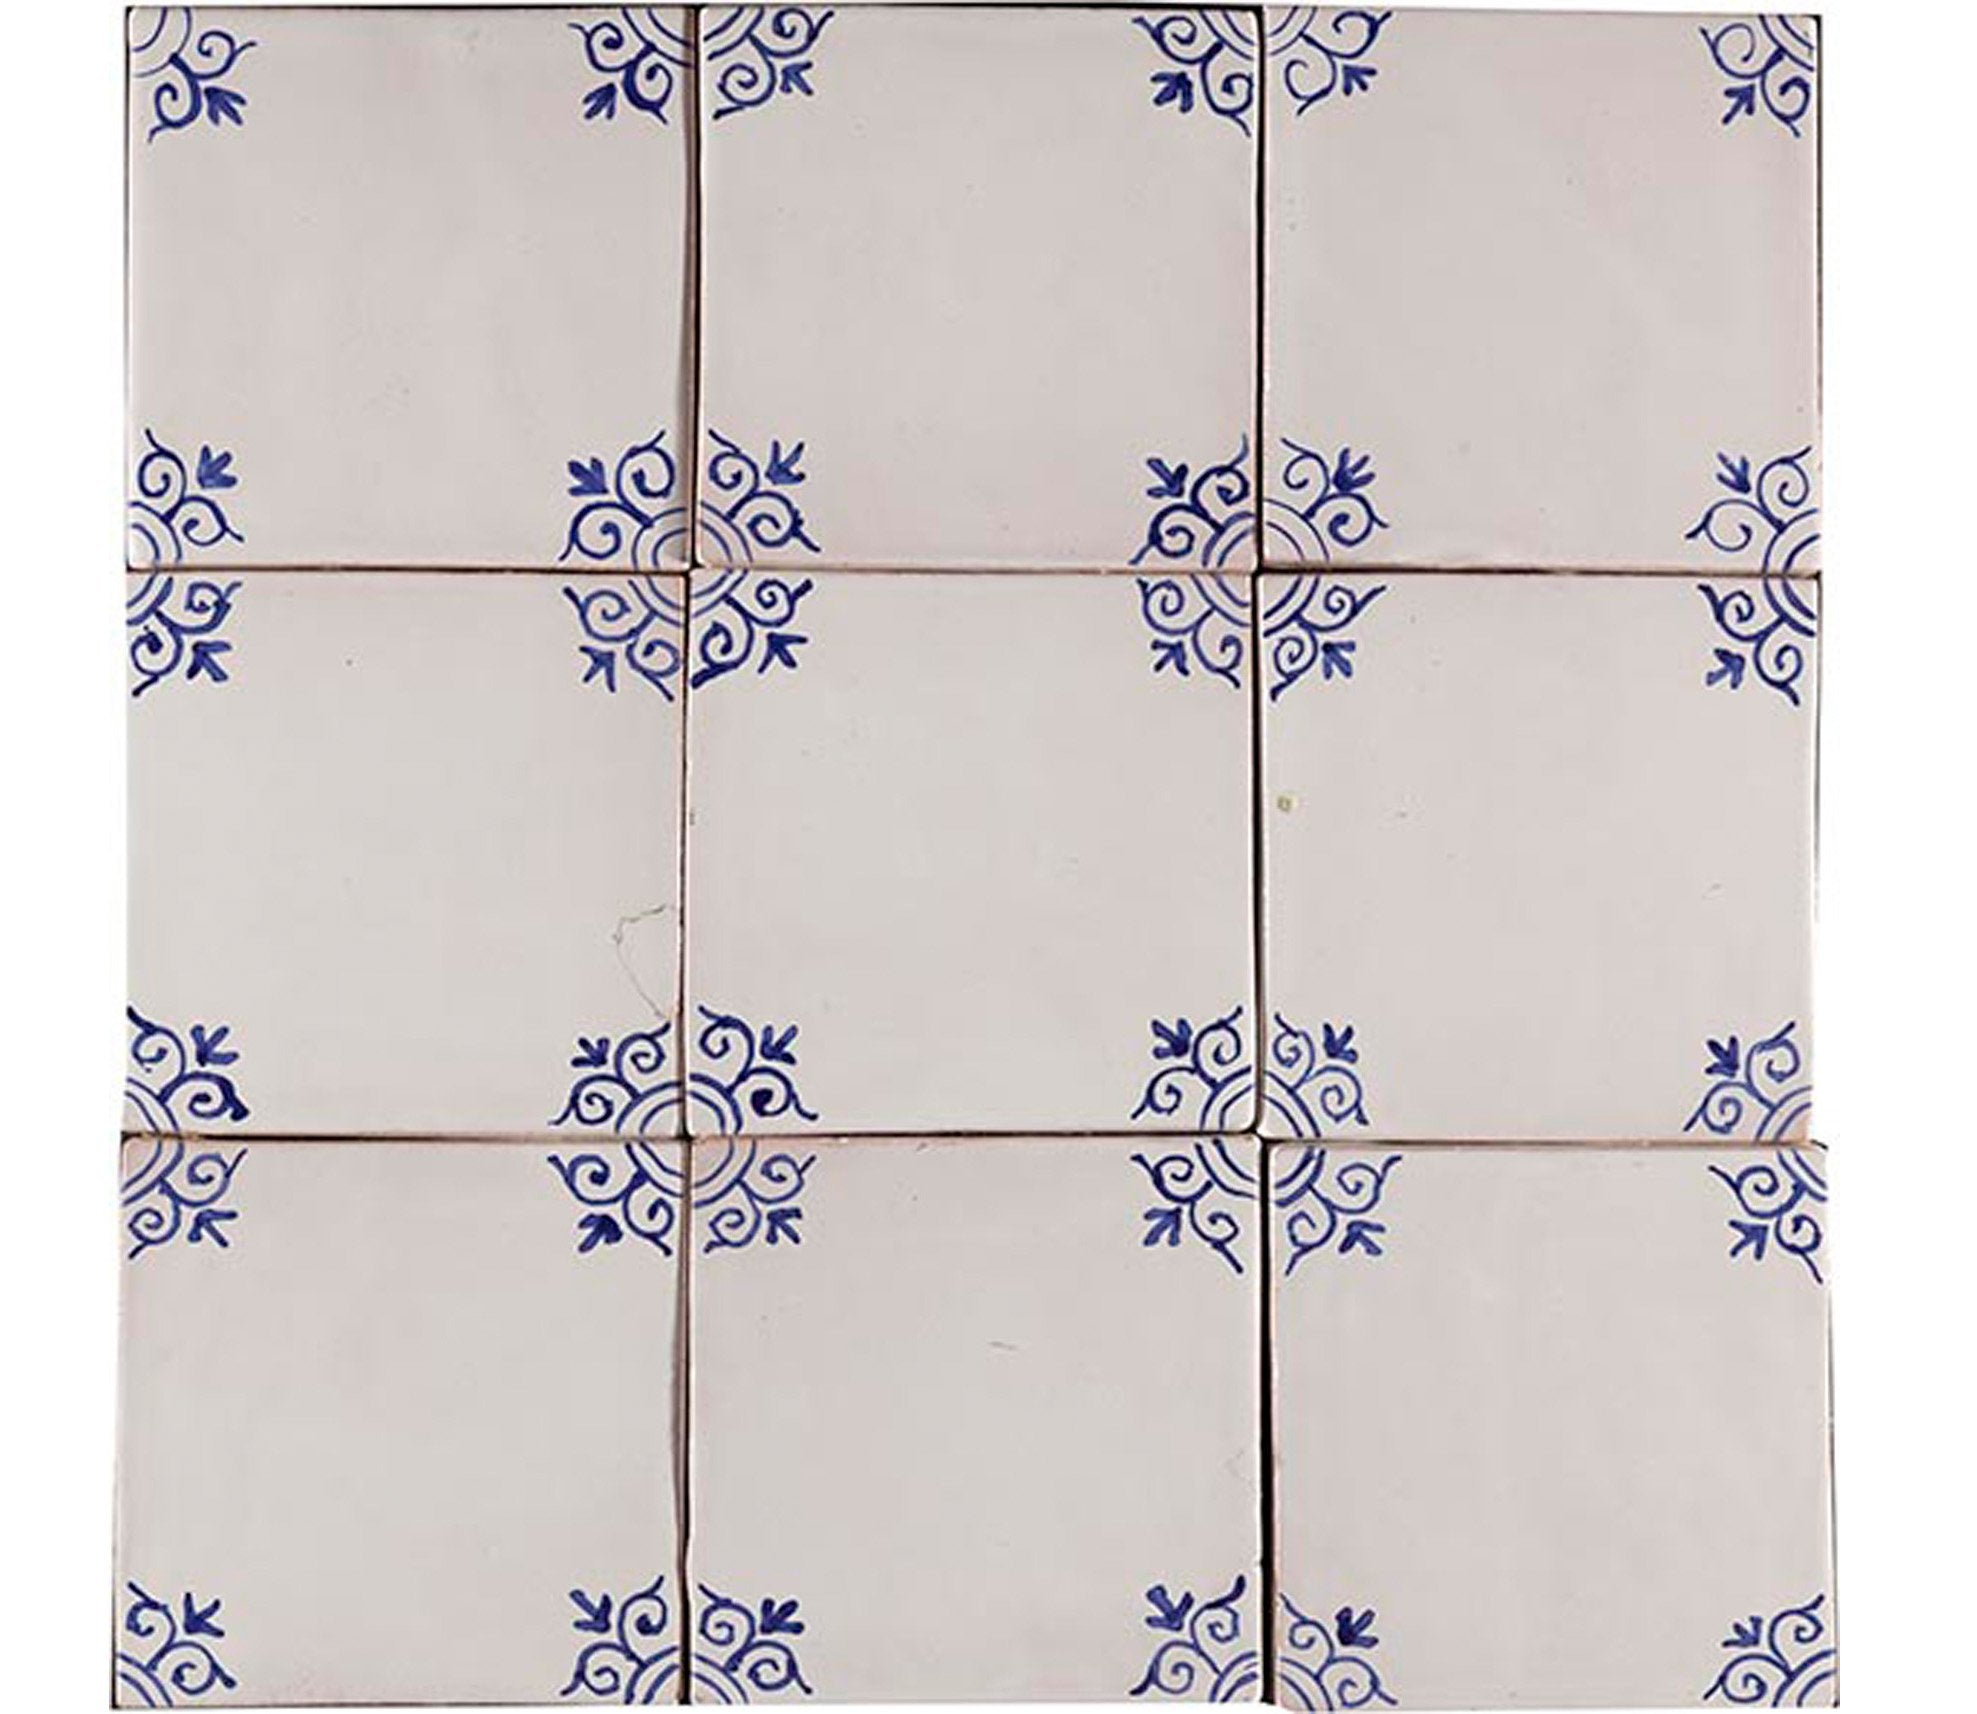 Series S Handpainted Tiles Product Image 52